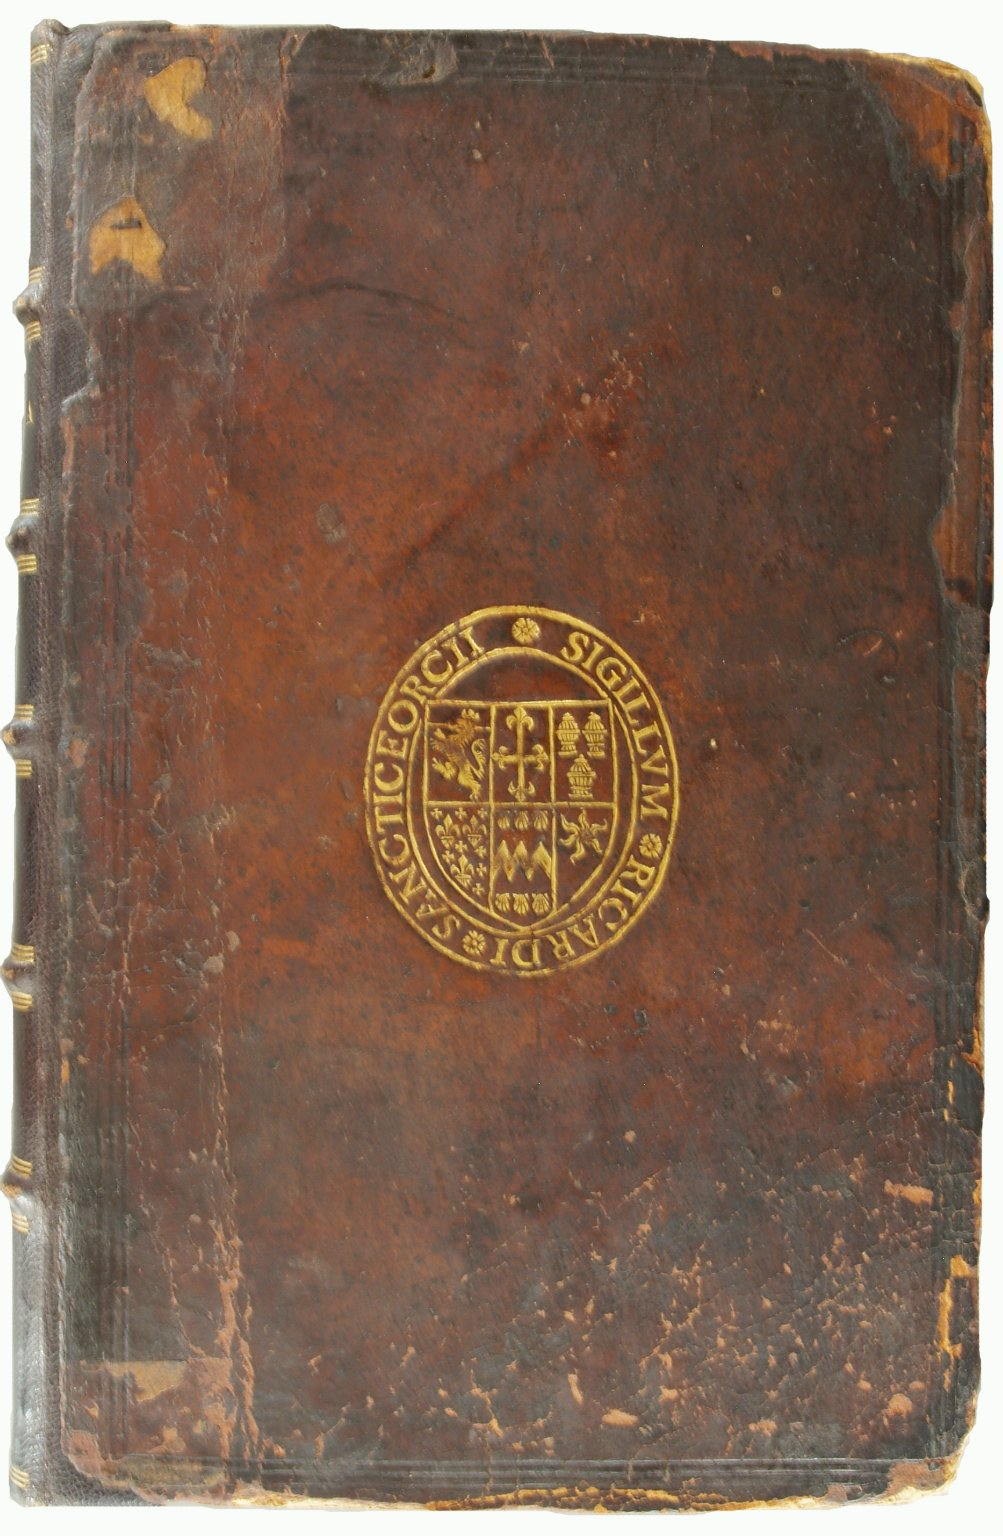 Front cover, STC 1169 copy 4.